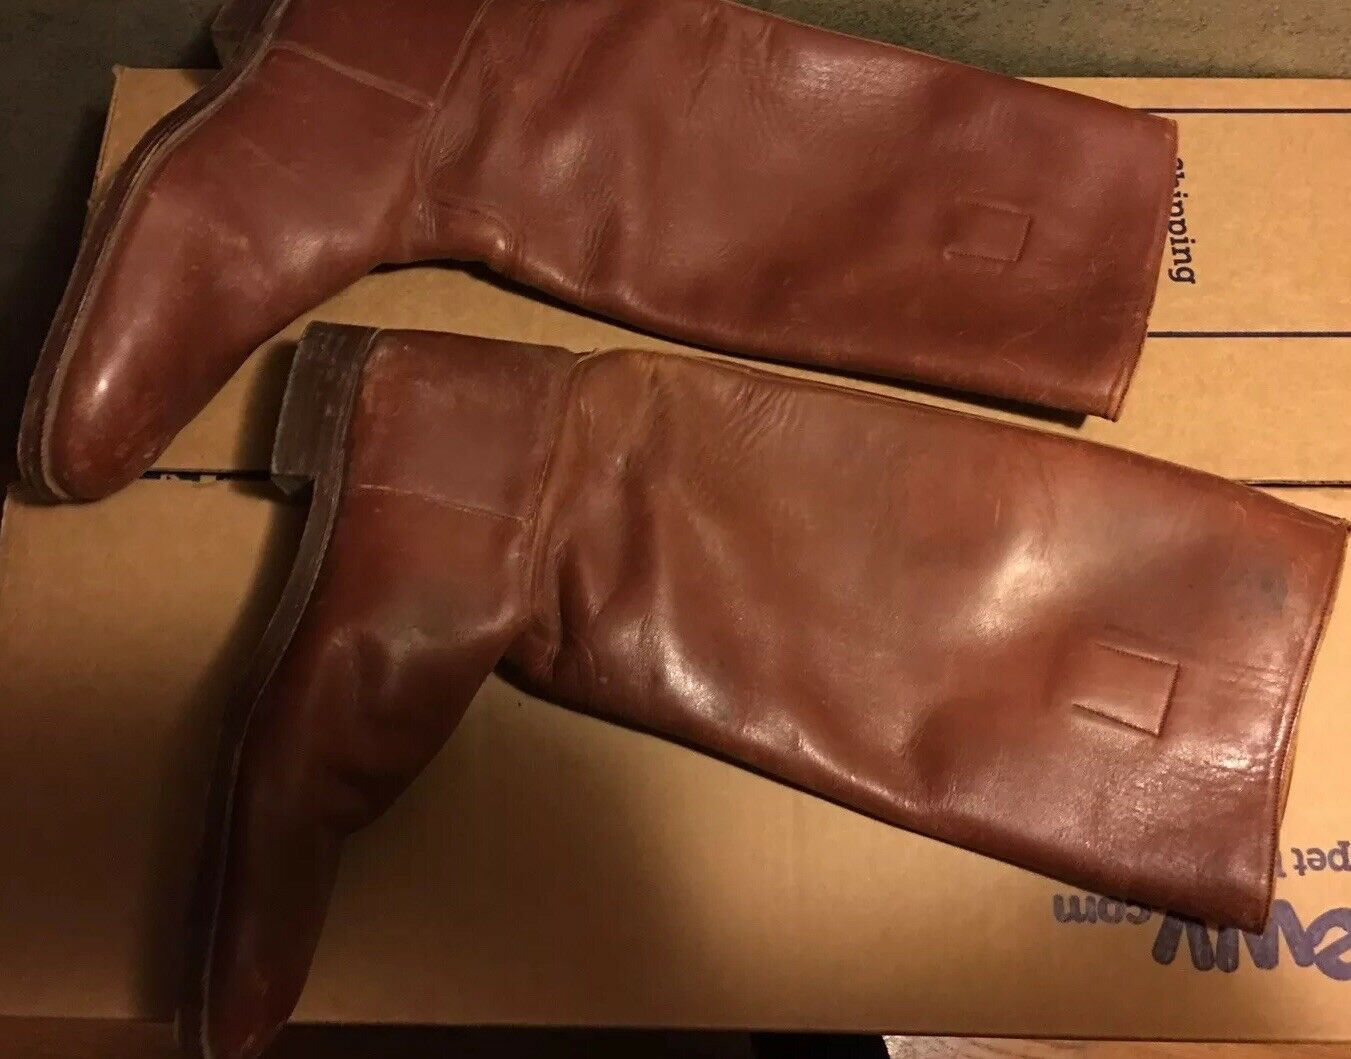 Miller's New York Vtg Equestrian Riding Boots Sz 7.5 Pre Owned Made In England